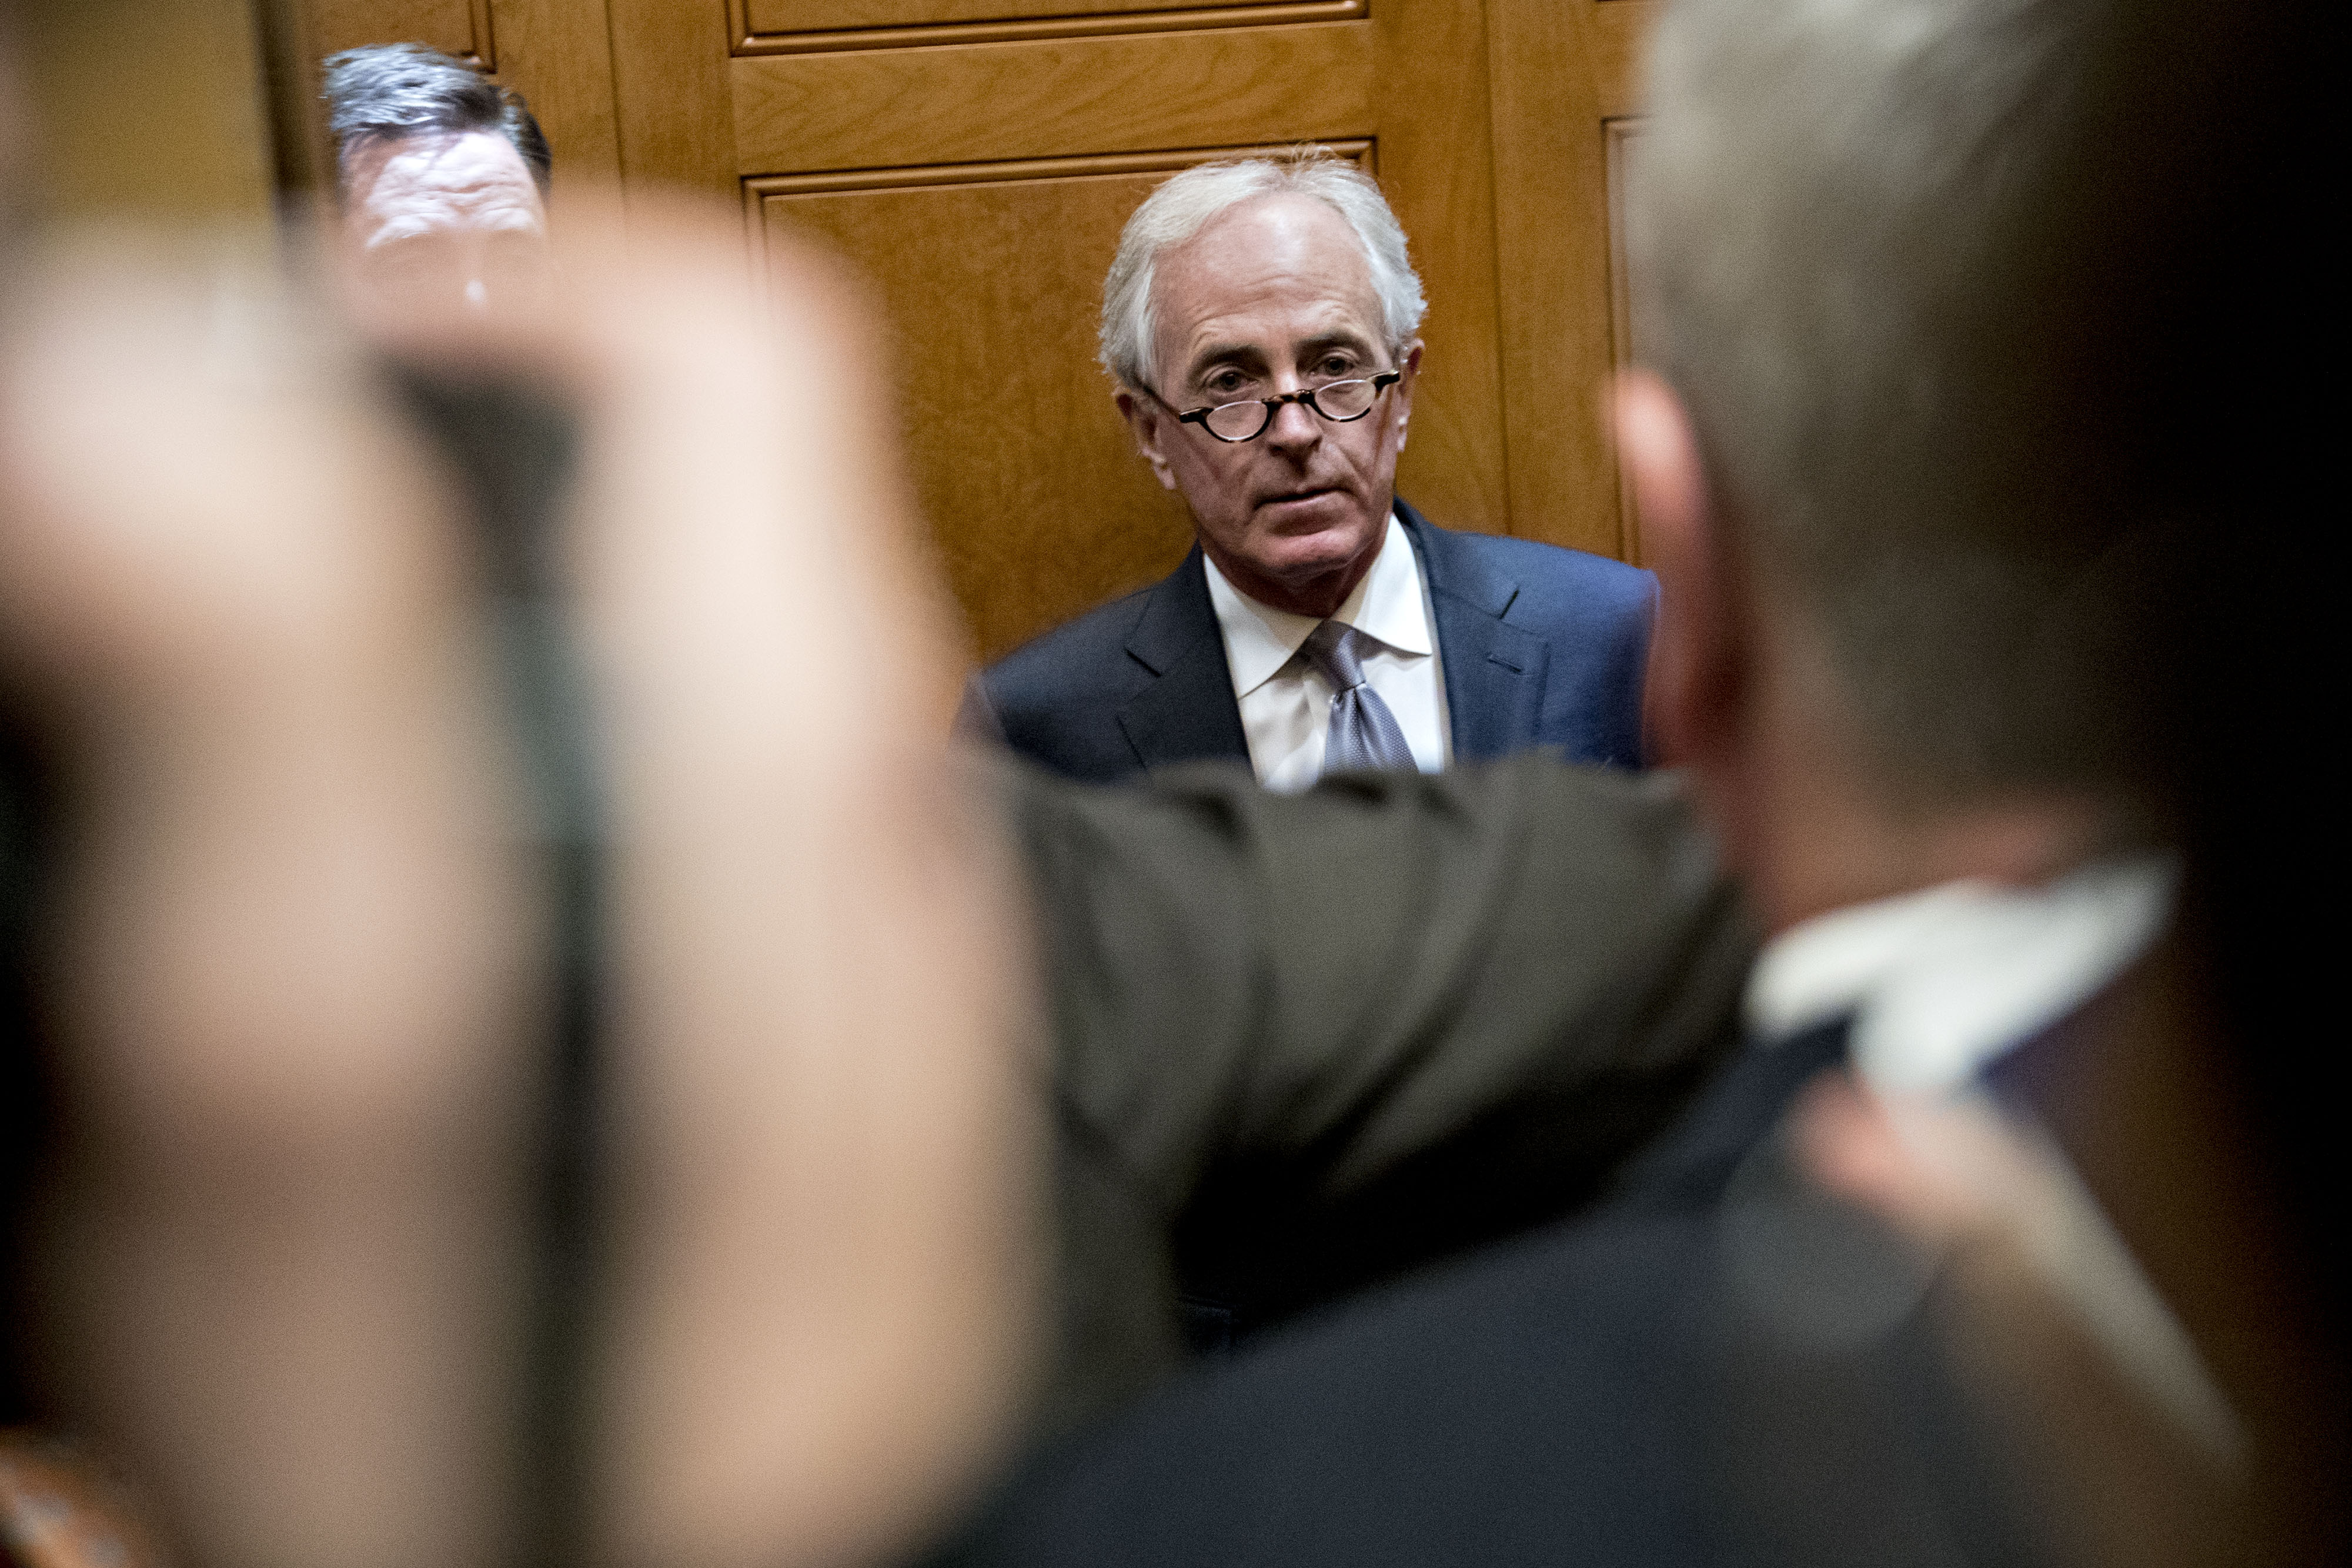 Senator Bob Corker, a Republican from Tennessee, stands on an elevator in the basement of the U.S. Capitol in Washington, D.C., U.S., on Thursday, Nov. 30, 2017.